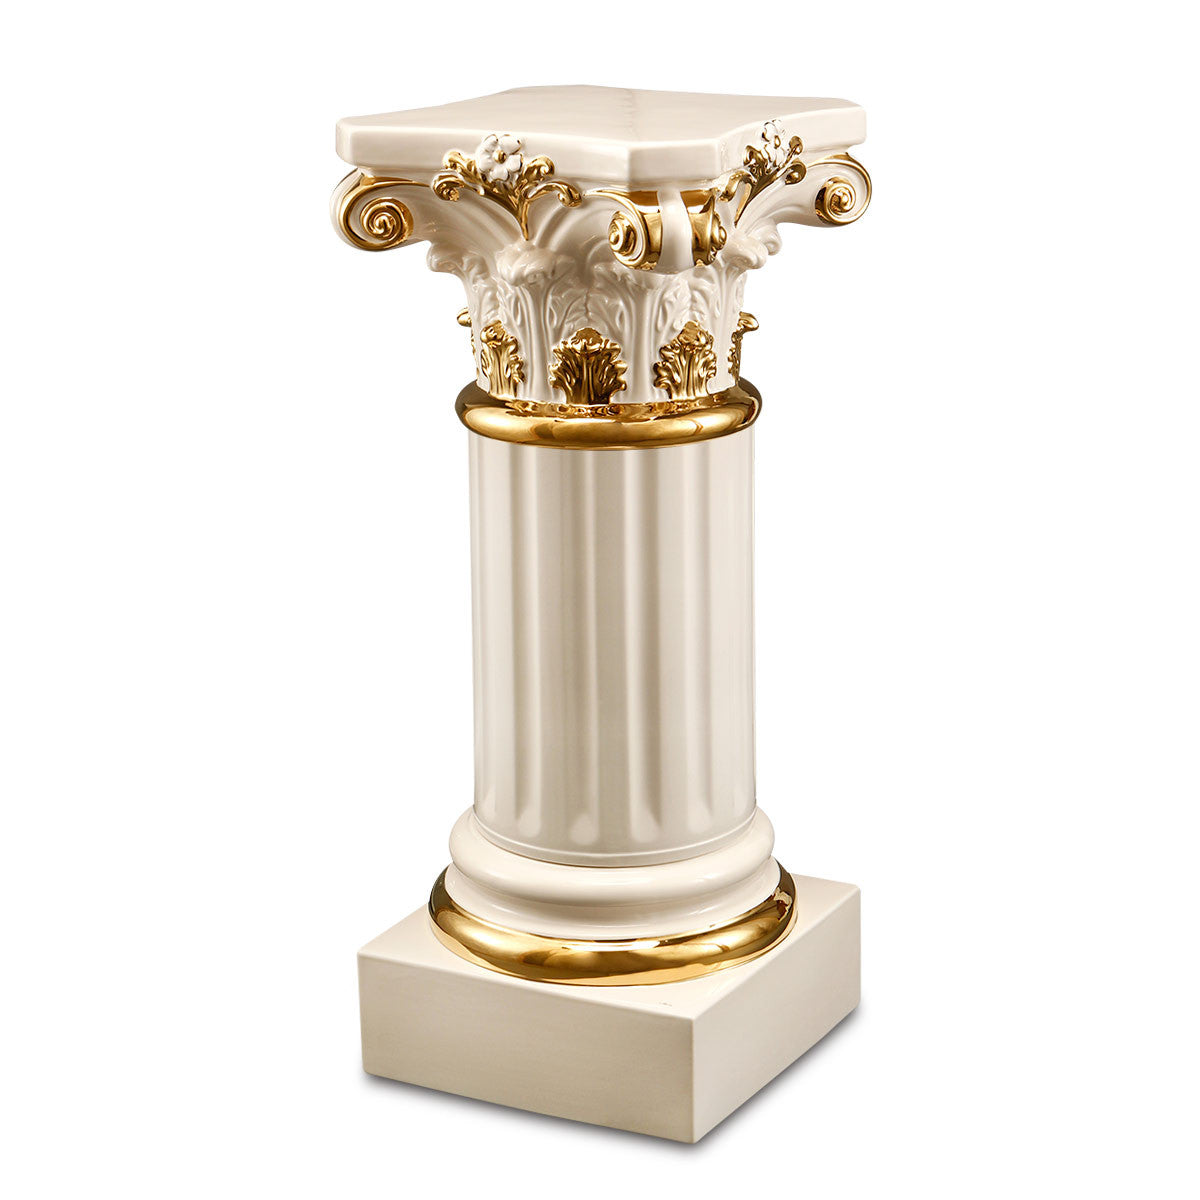 ceramic porcelain ivory corinthian column finishing in pure gold handmade in Italy